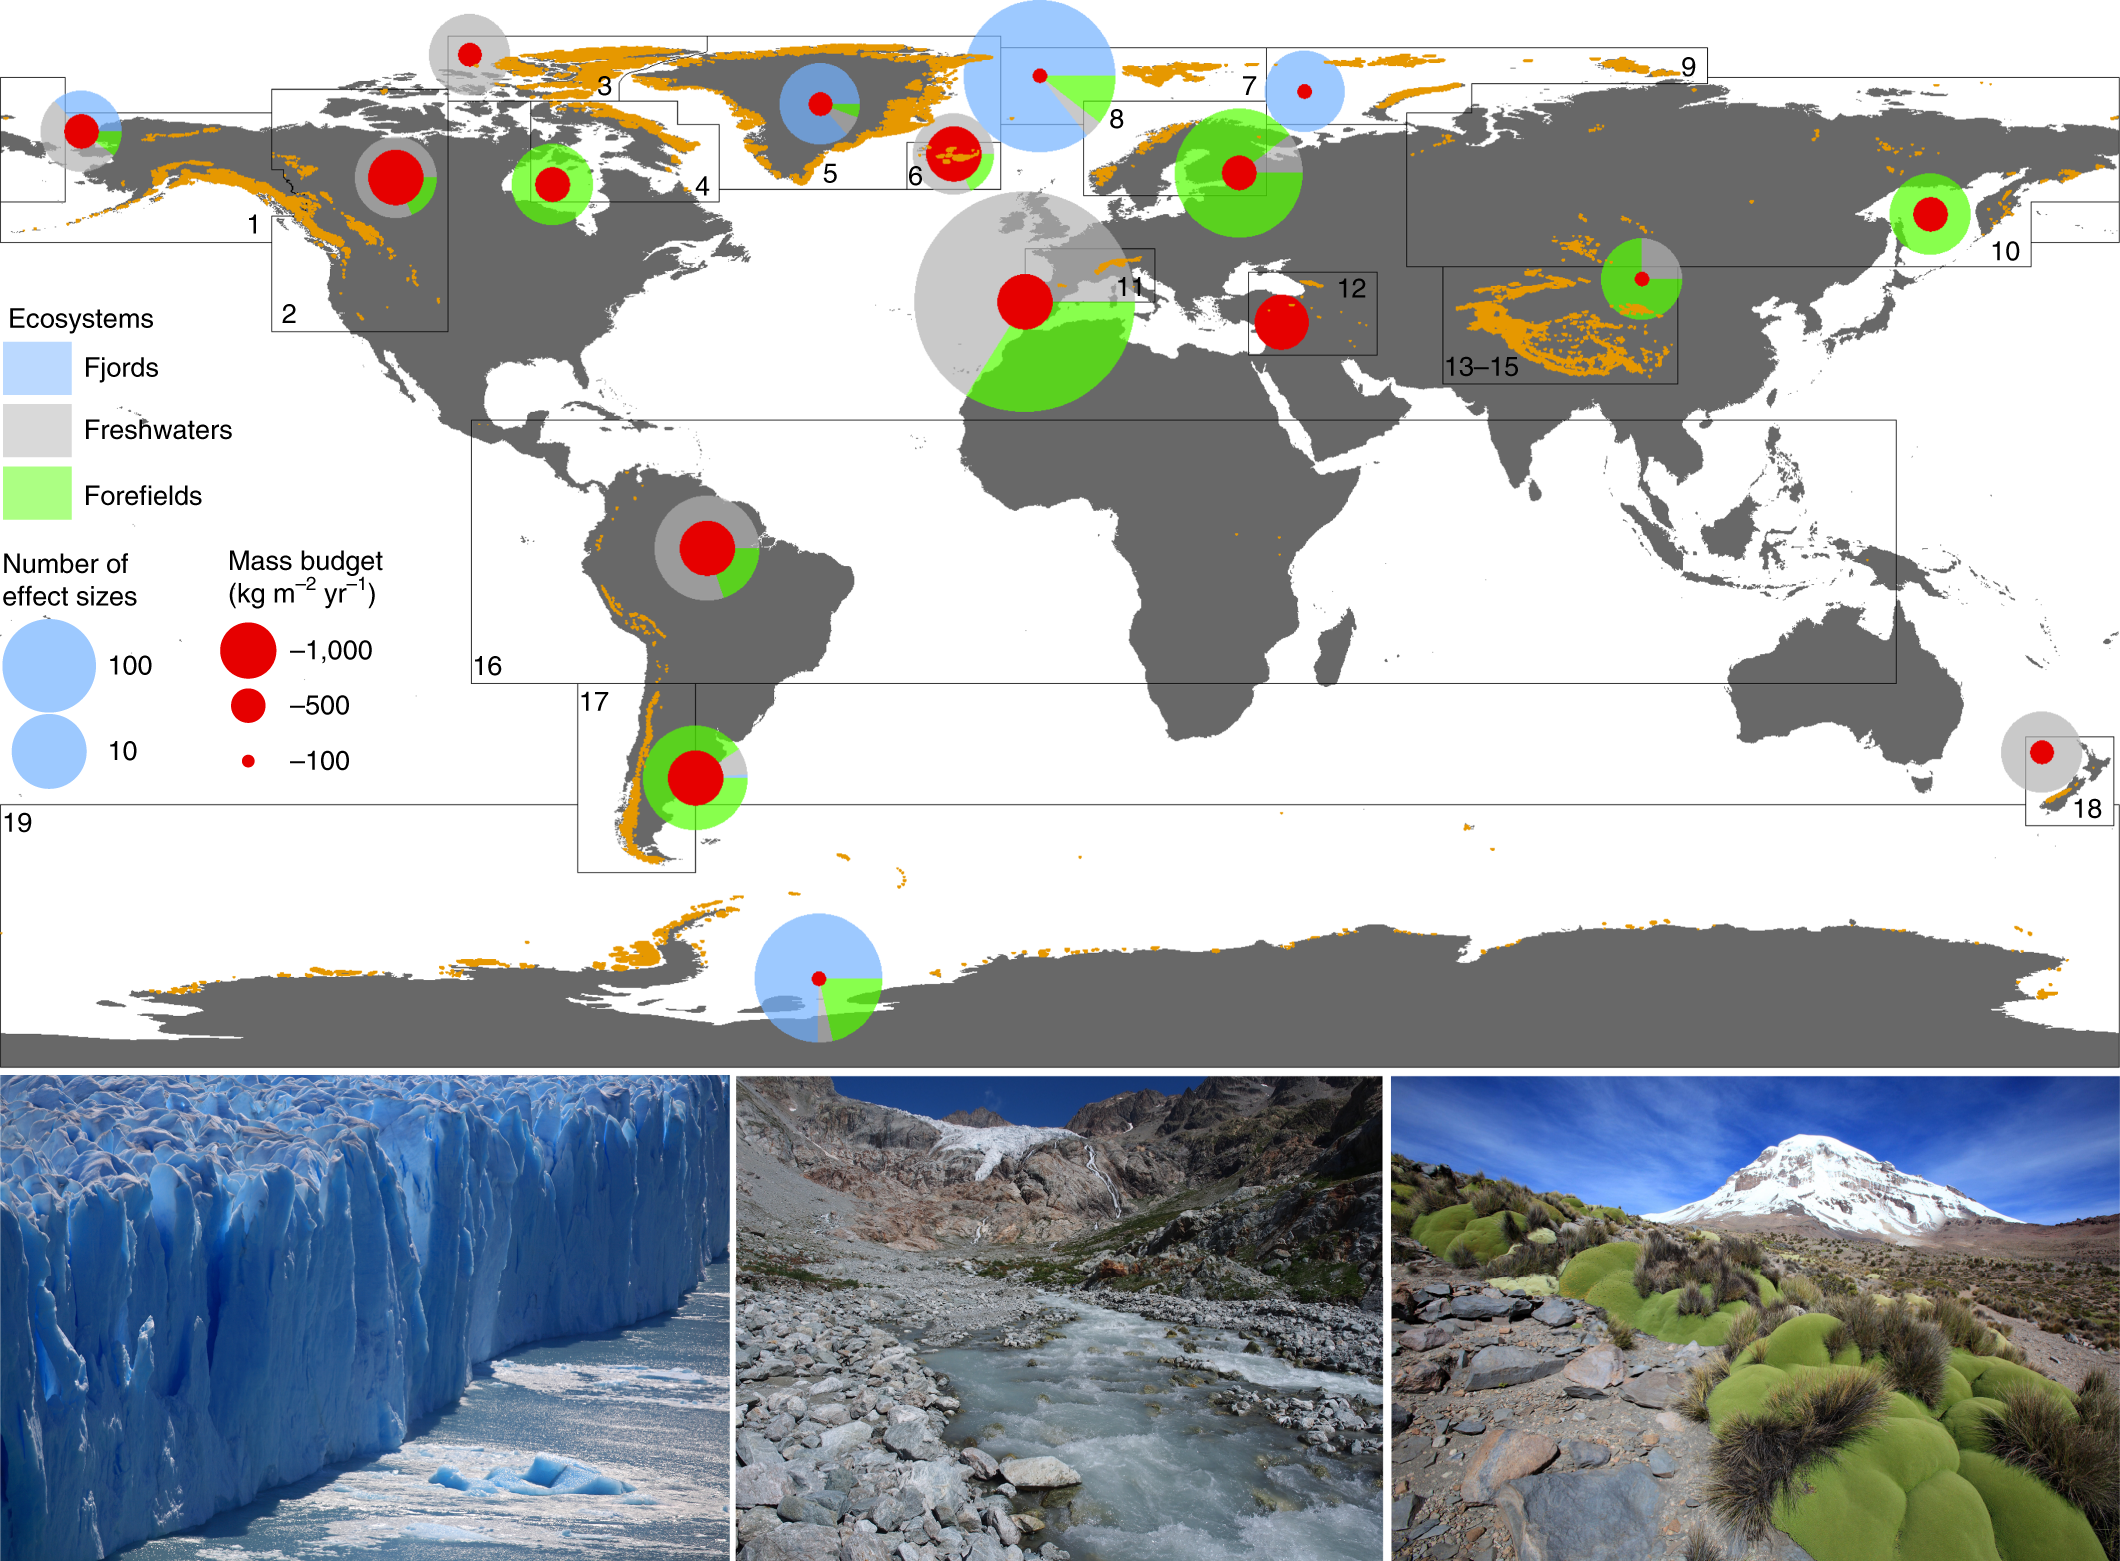 A global synthesis of biodiversity responses to glacier retreat